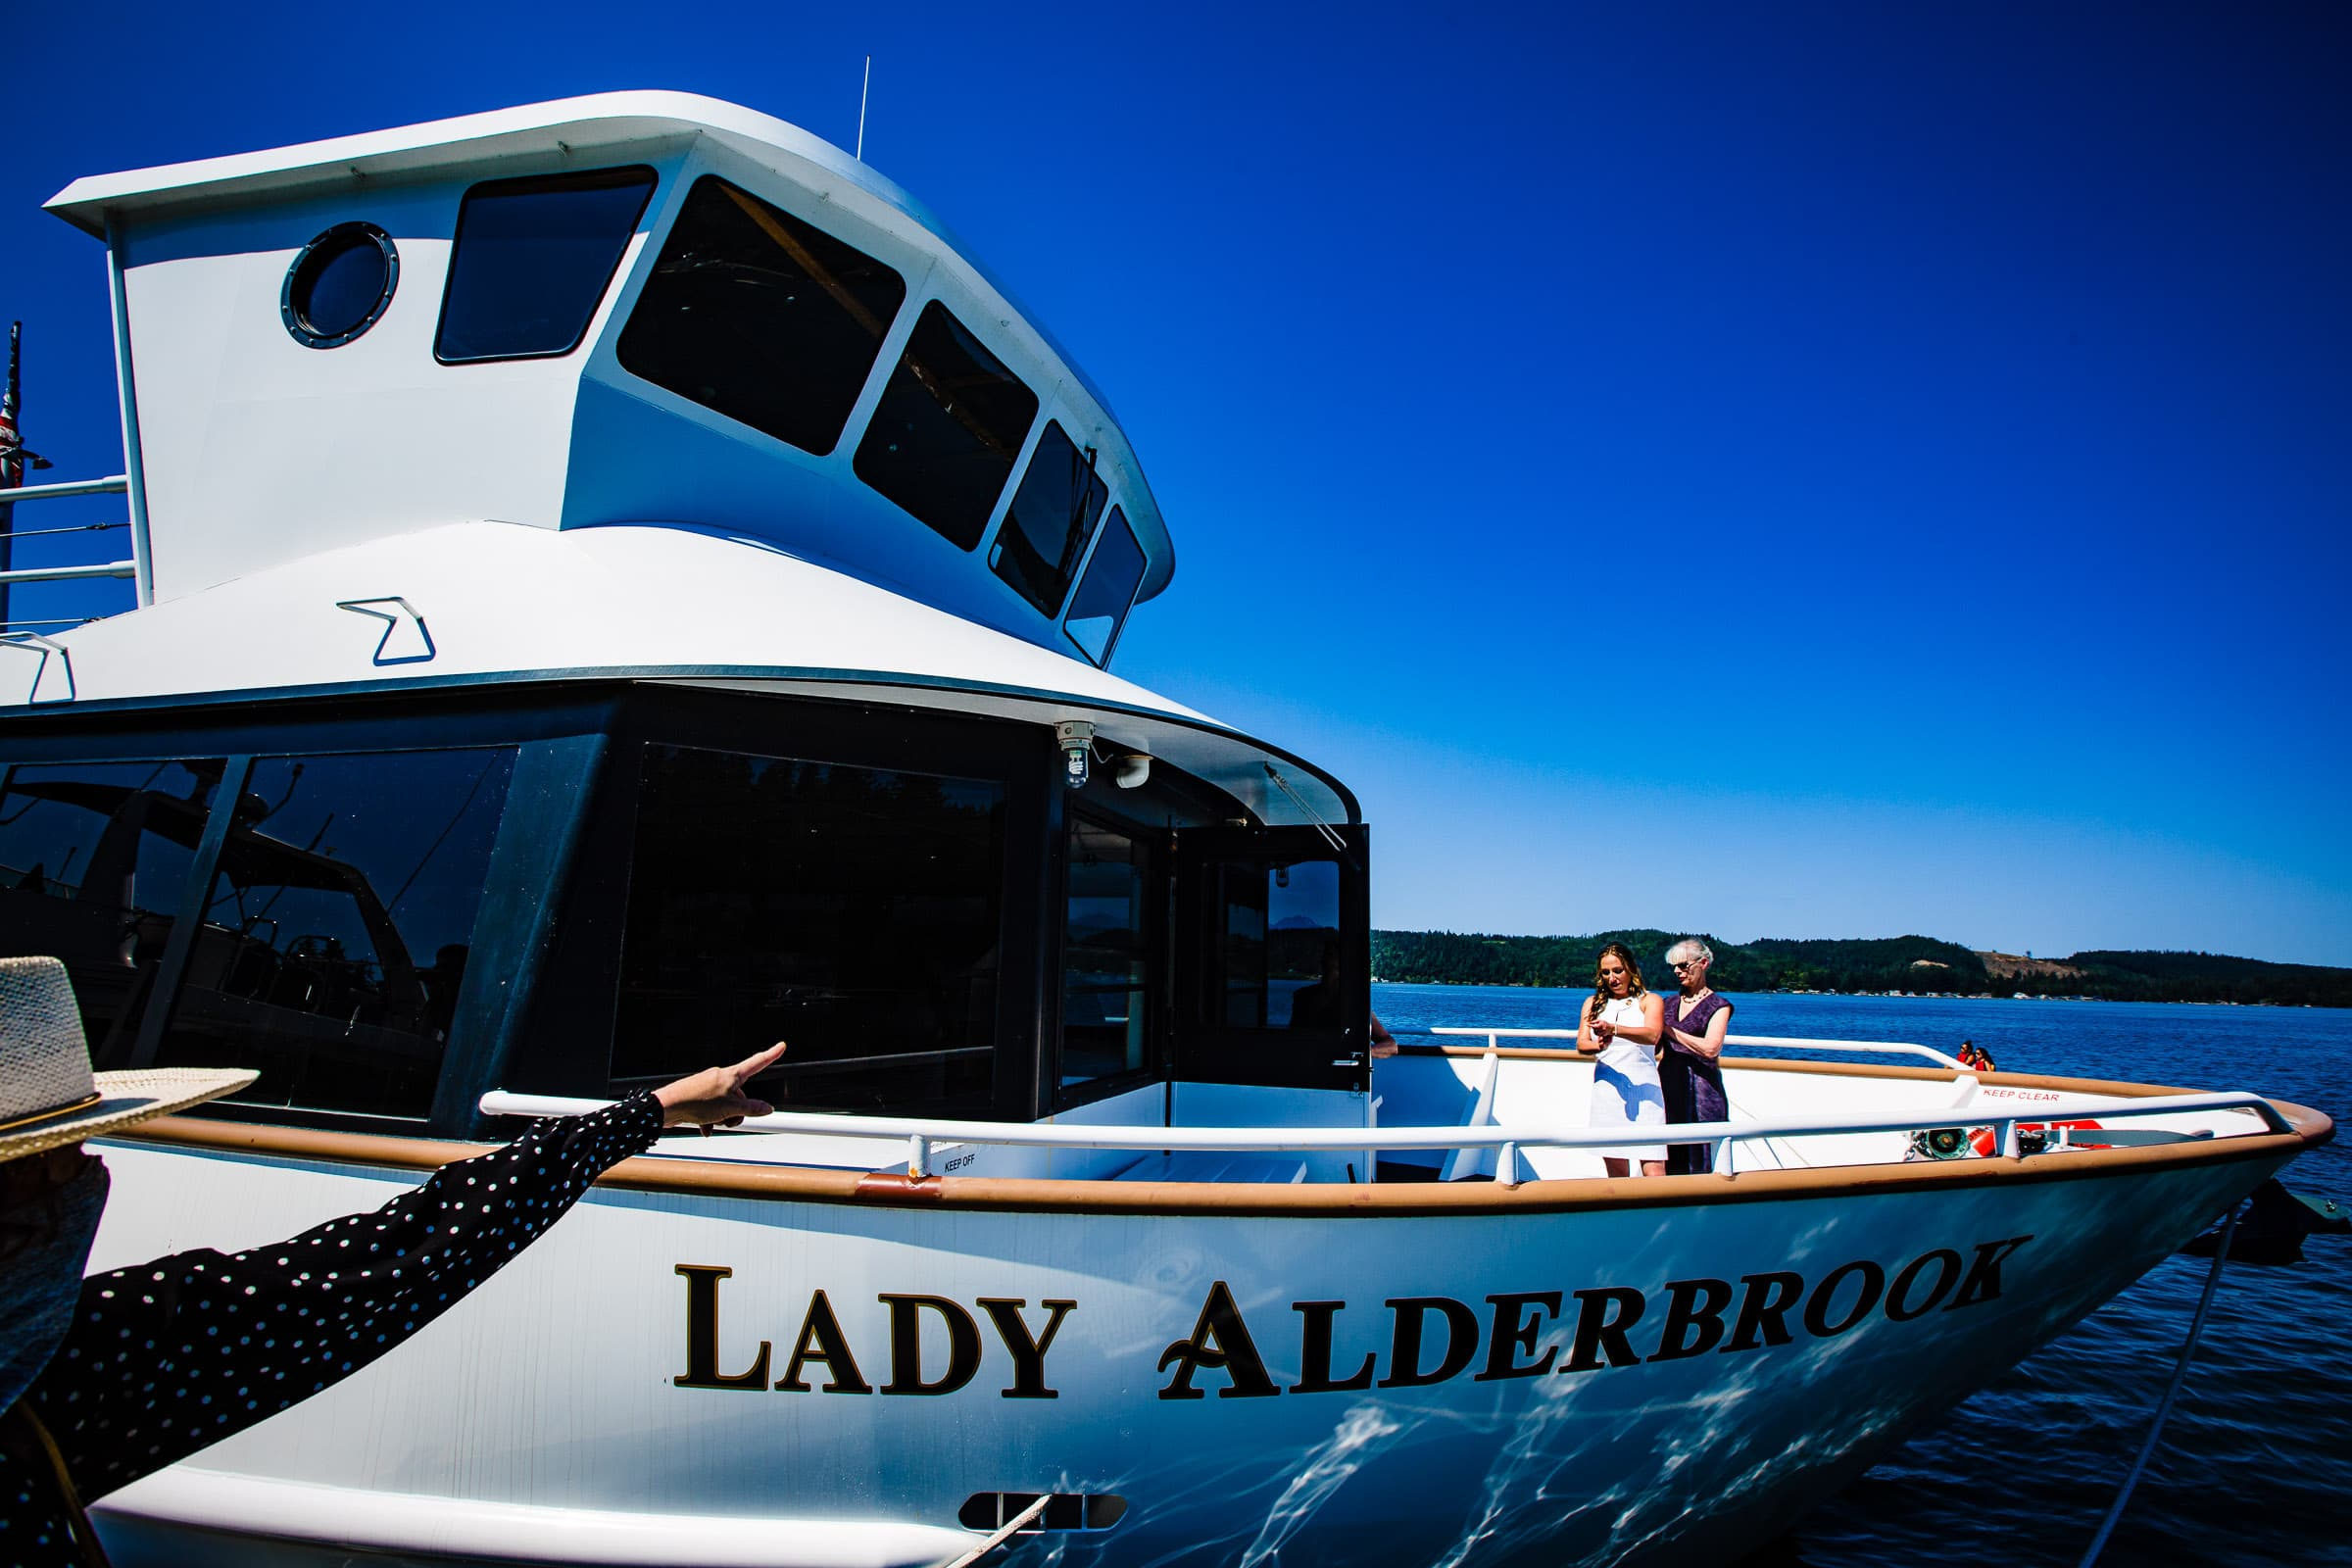 Bride getting ready at Alderbrook on the ferry boat for her Alderbrook Elopement